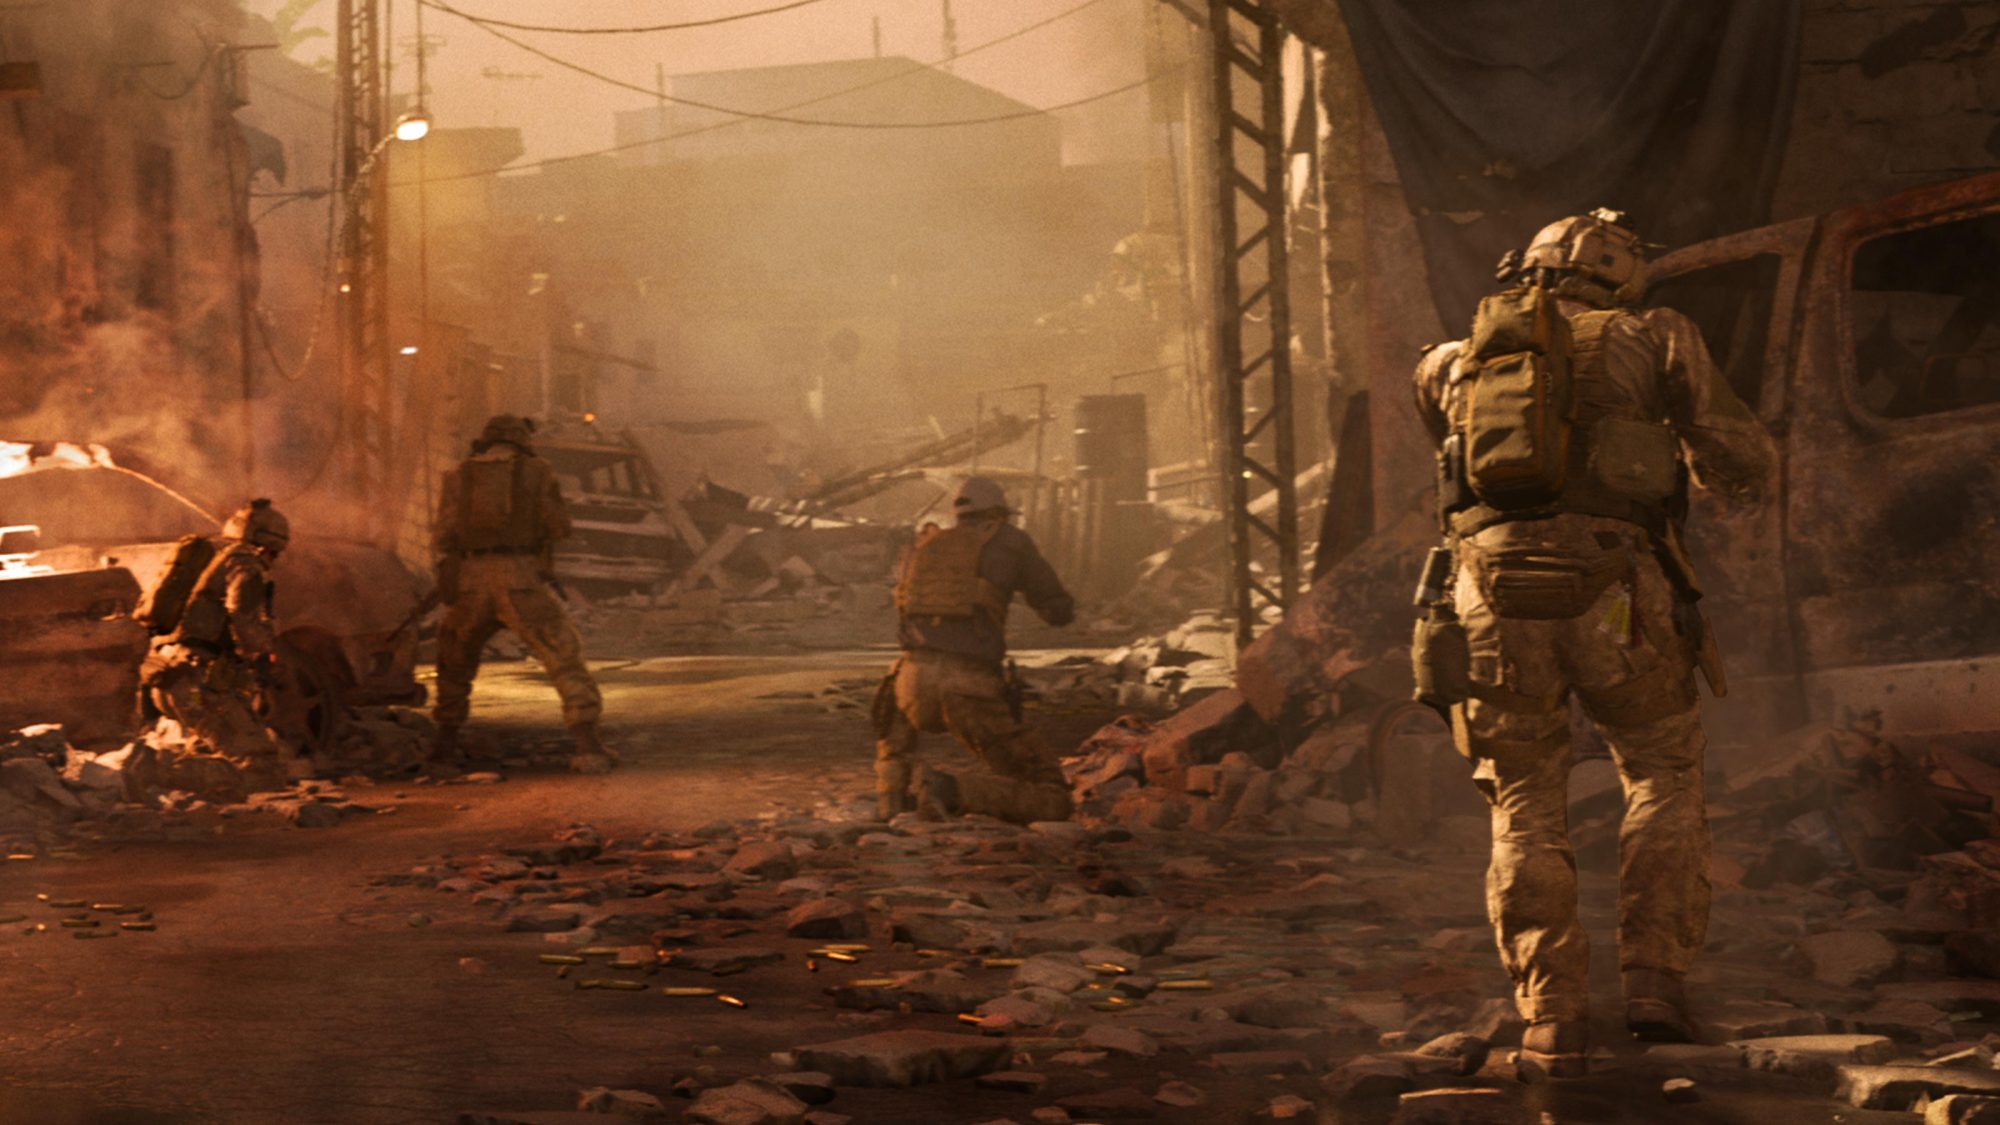 Call of Duty: Modern Warfare 2019 video game Credit: Infinity Ward/Activision